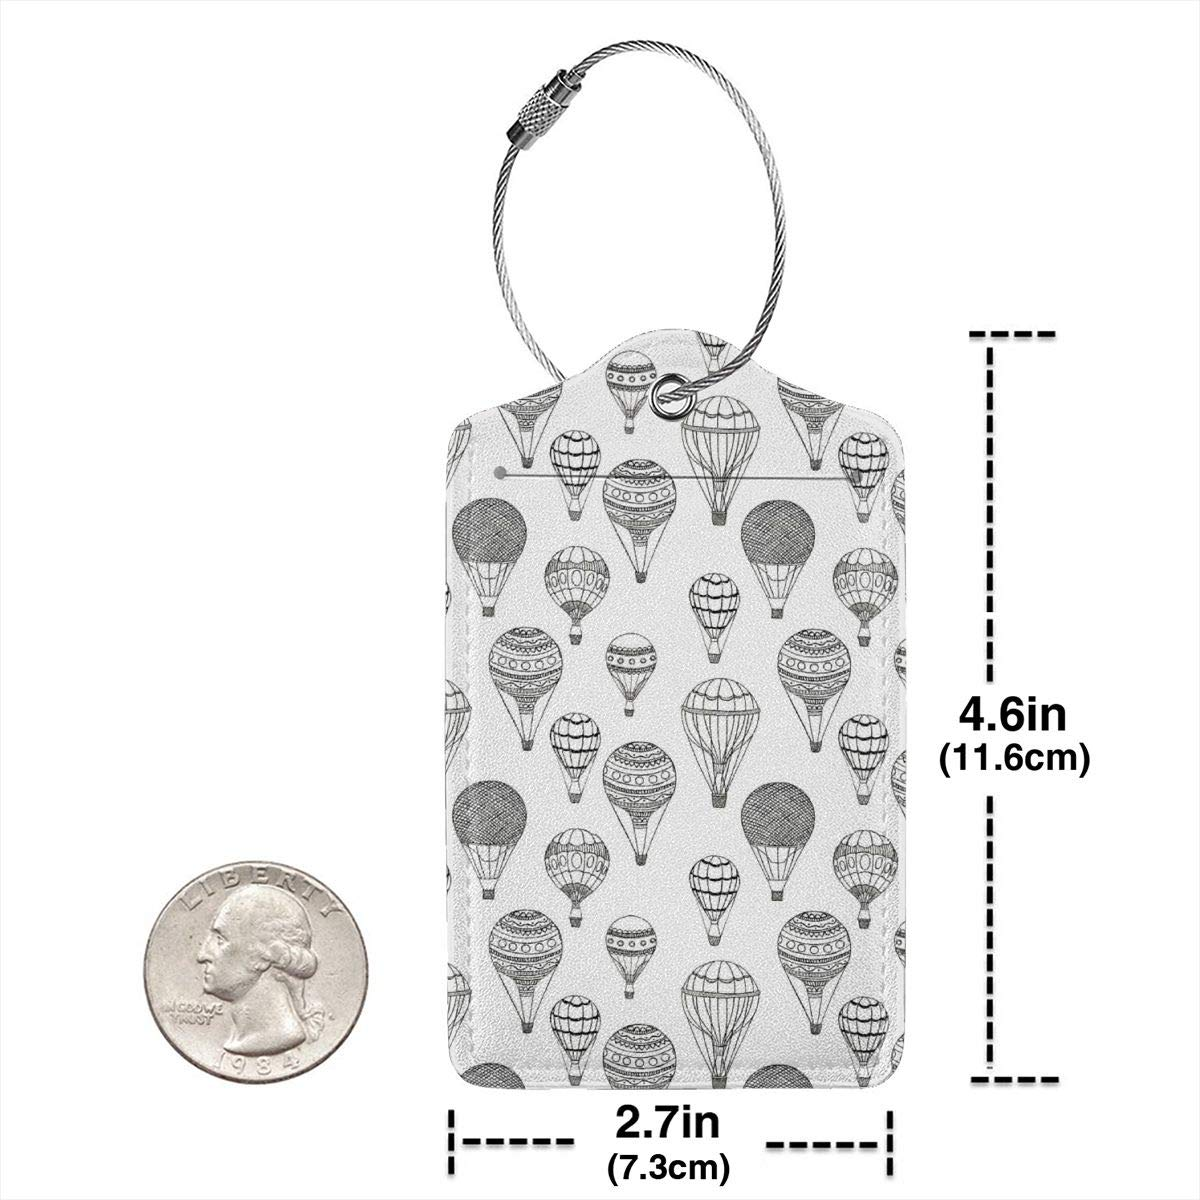 Hot Air Balloons Luggage Tag Label Travel Bag Label With Privacy Cover Luggage Tag Leather Personalized Suitcase Tag Travel Accessories